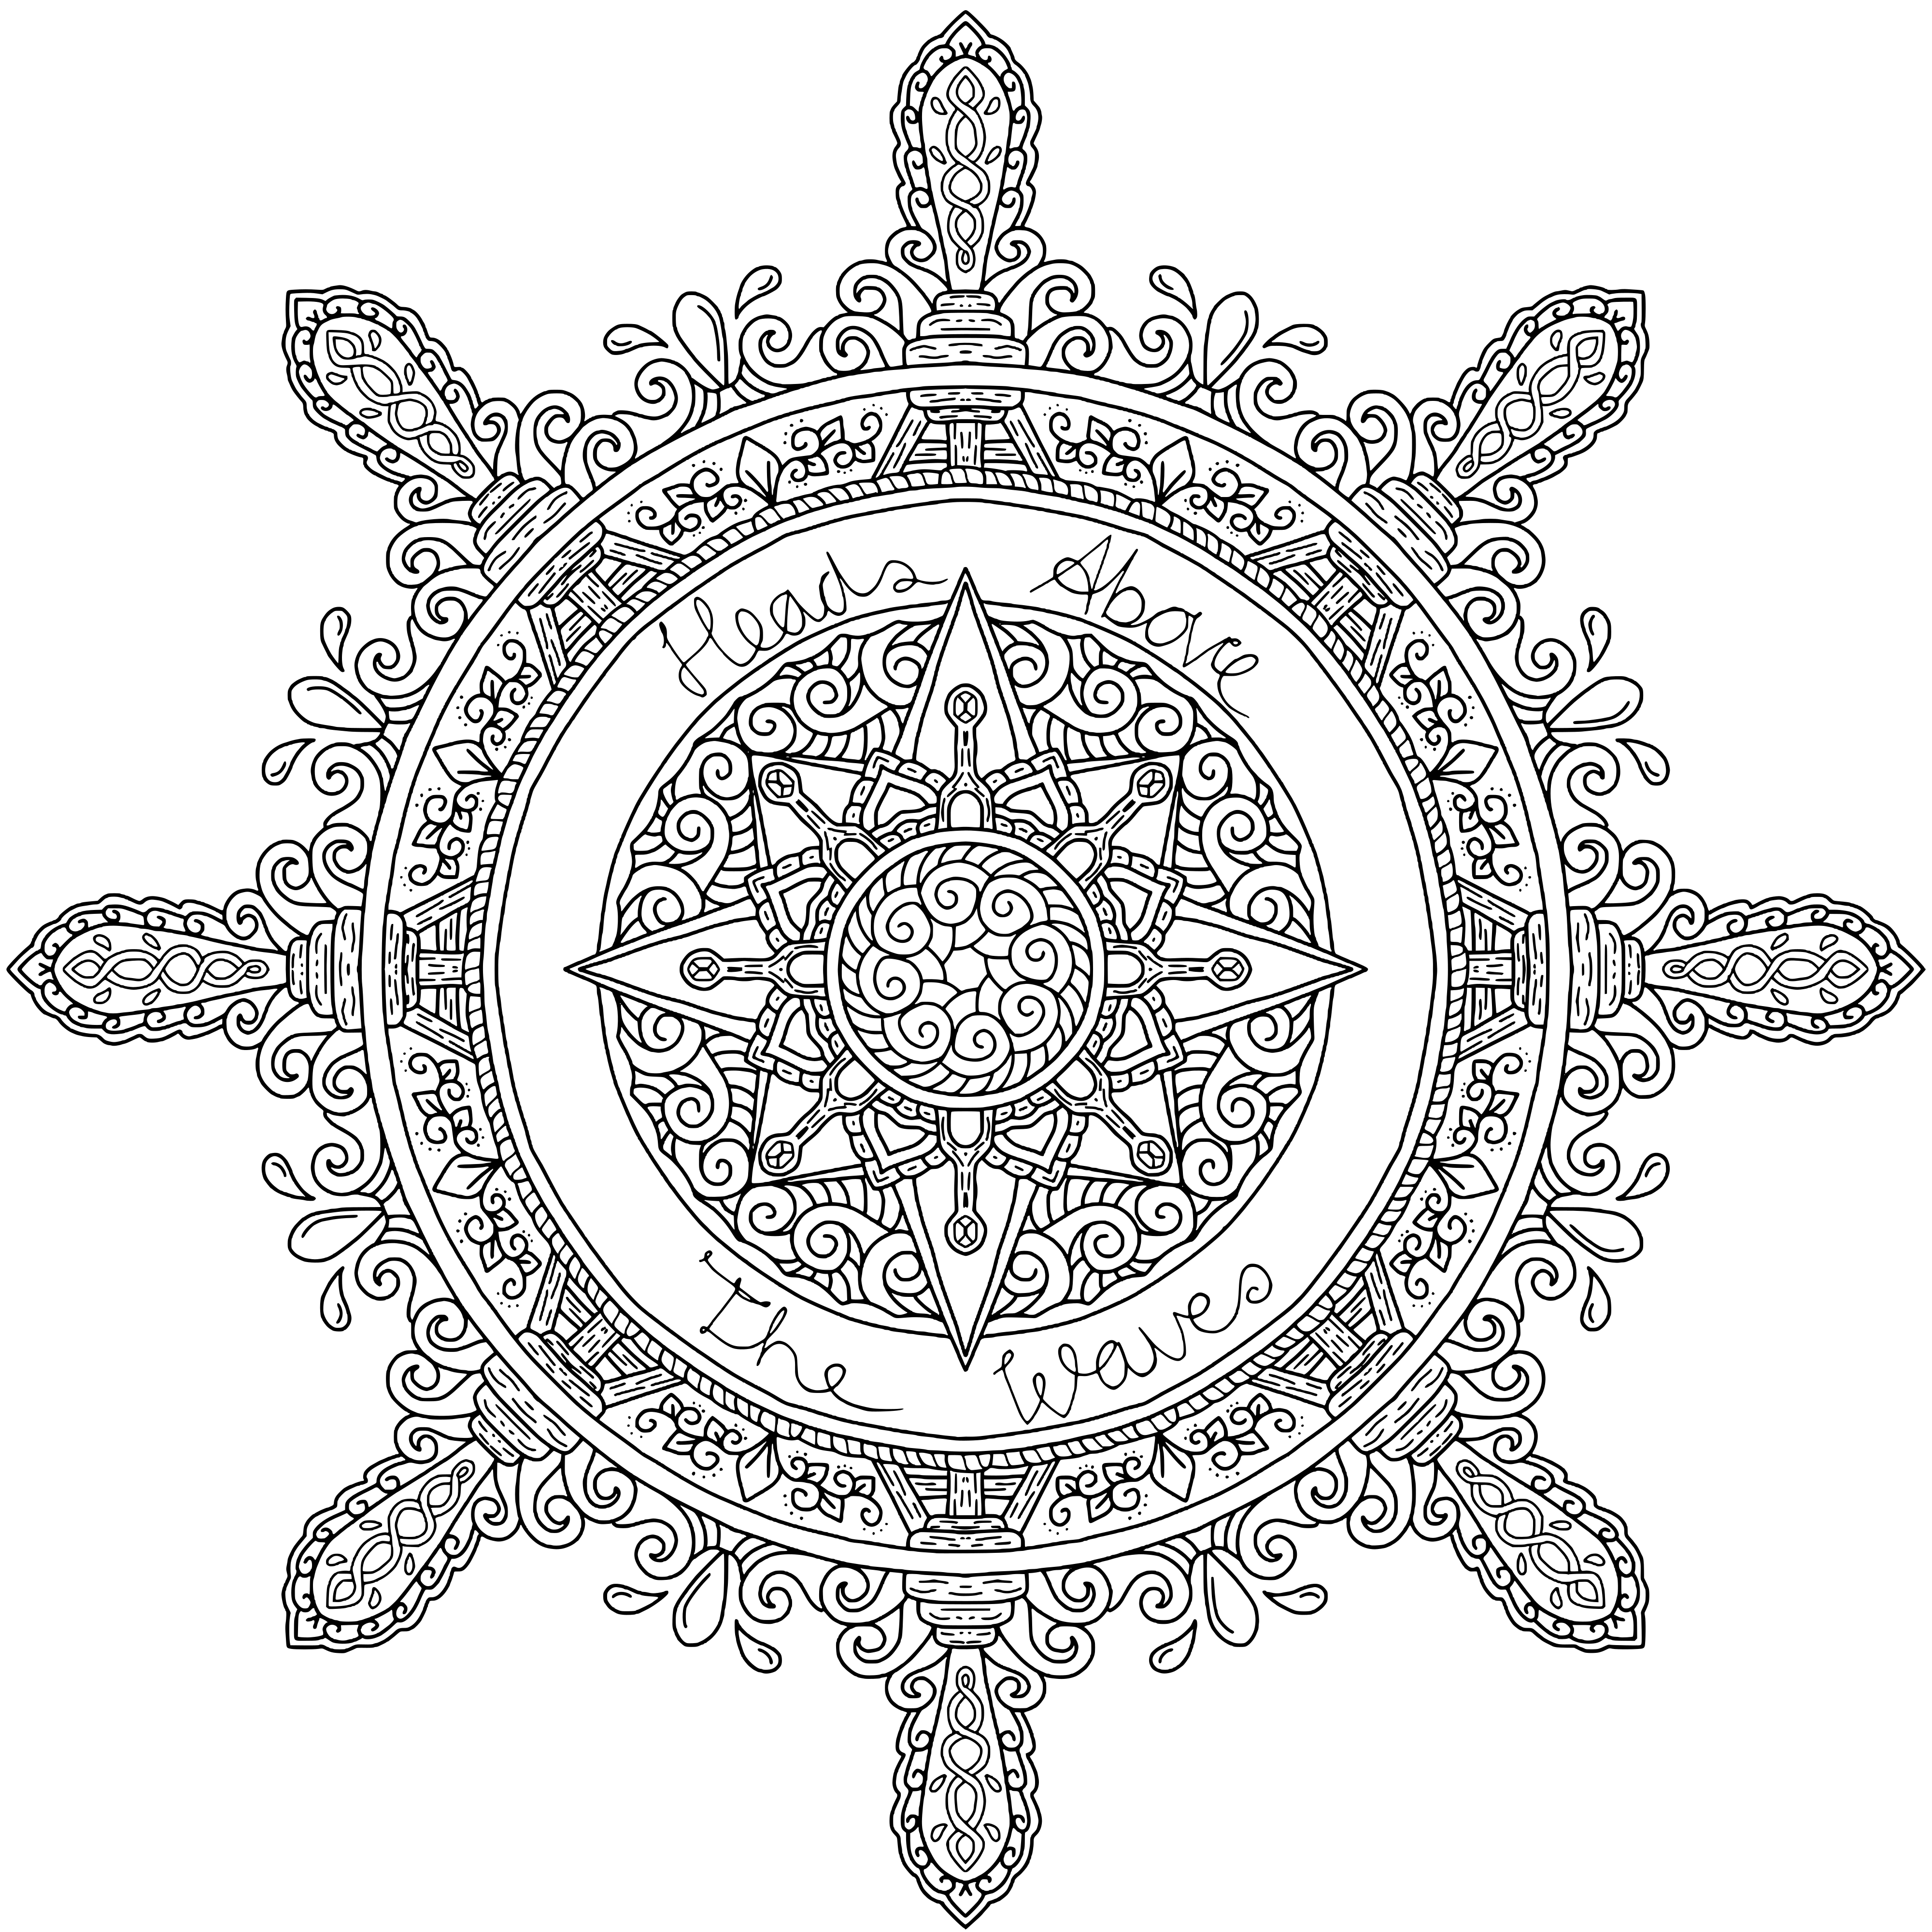 Mandala Mindful Colouring – Heads Above The Waves